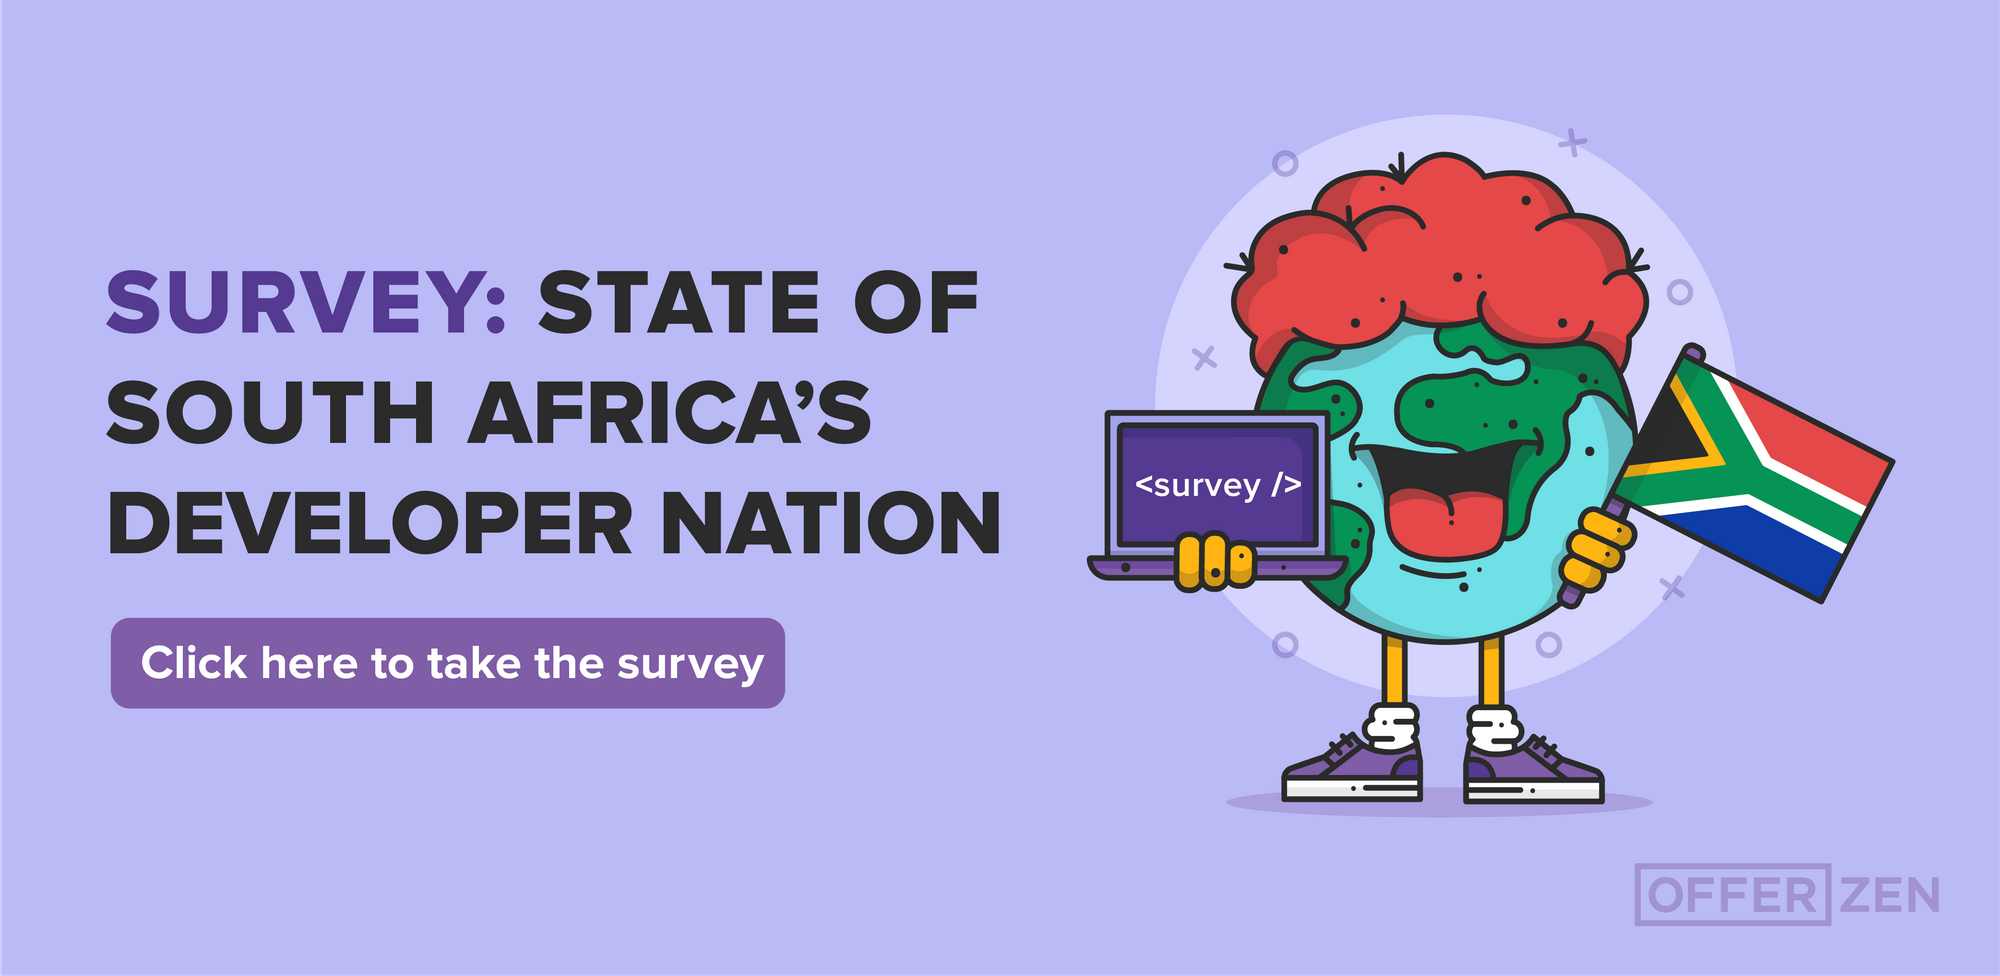 State-of-South-Africa-s-developer-nation-survey_World-with-flag---laptop_inner-article-image.png-29